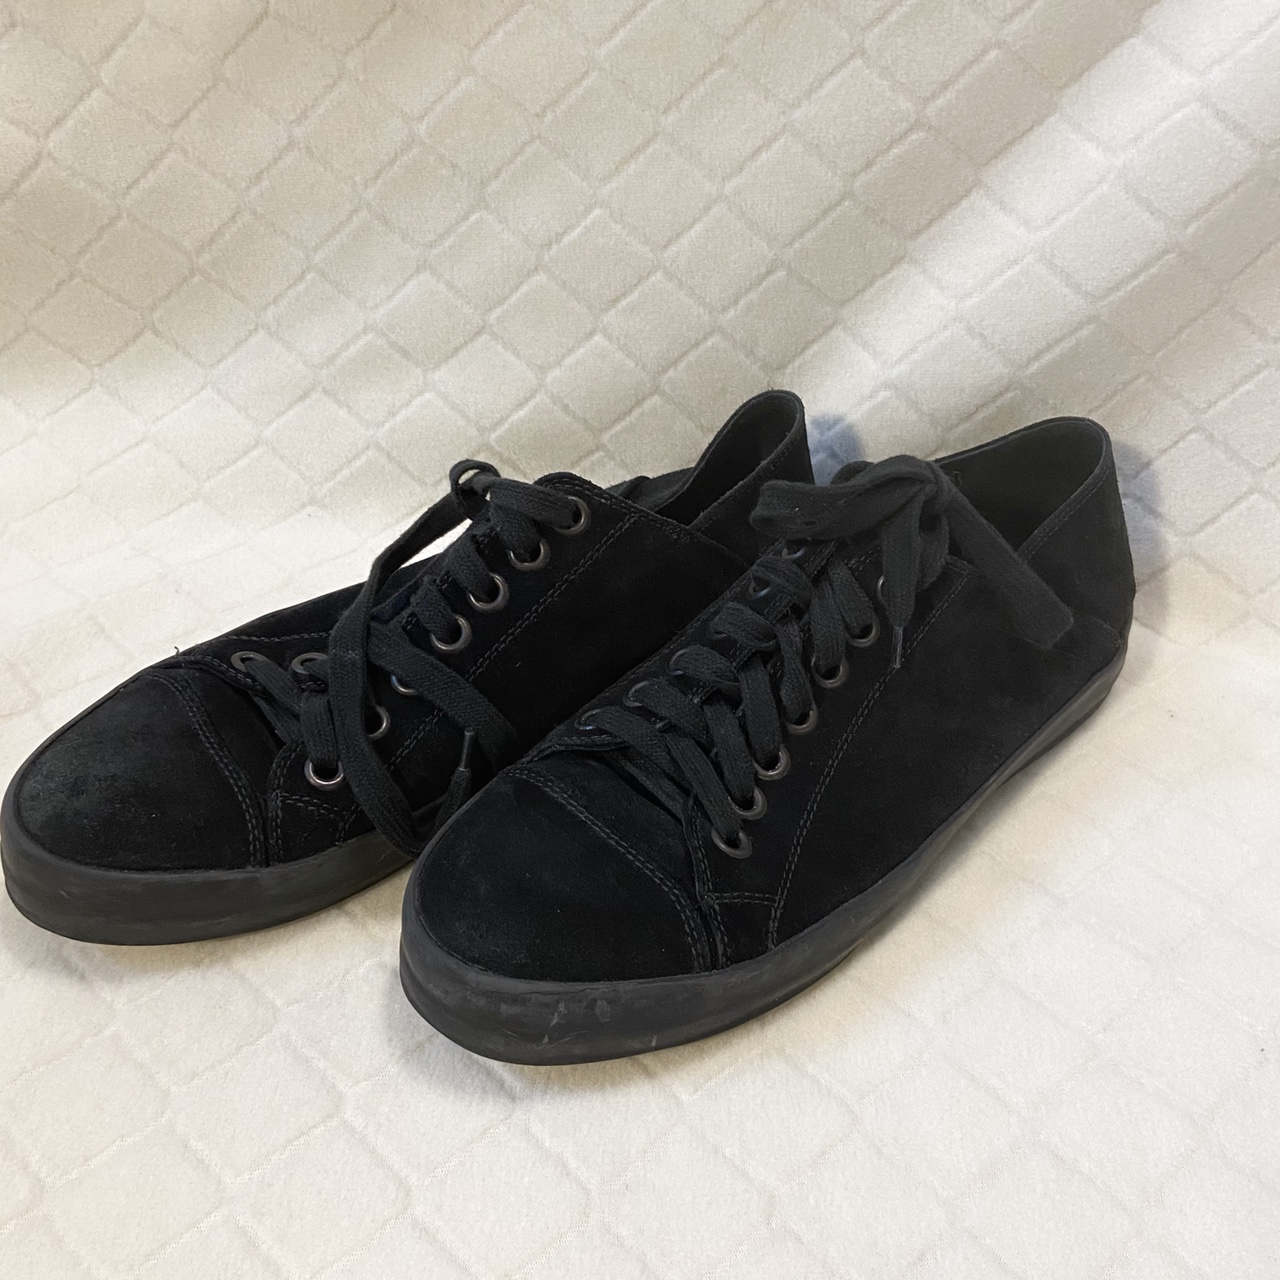 Product Image 1 - Ann Demeulemeester black suede converse